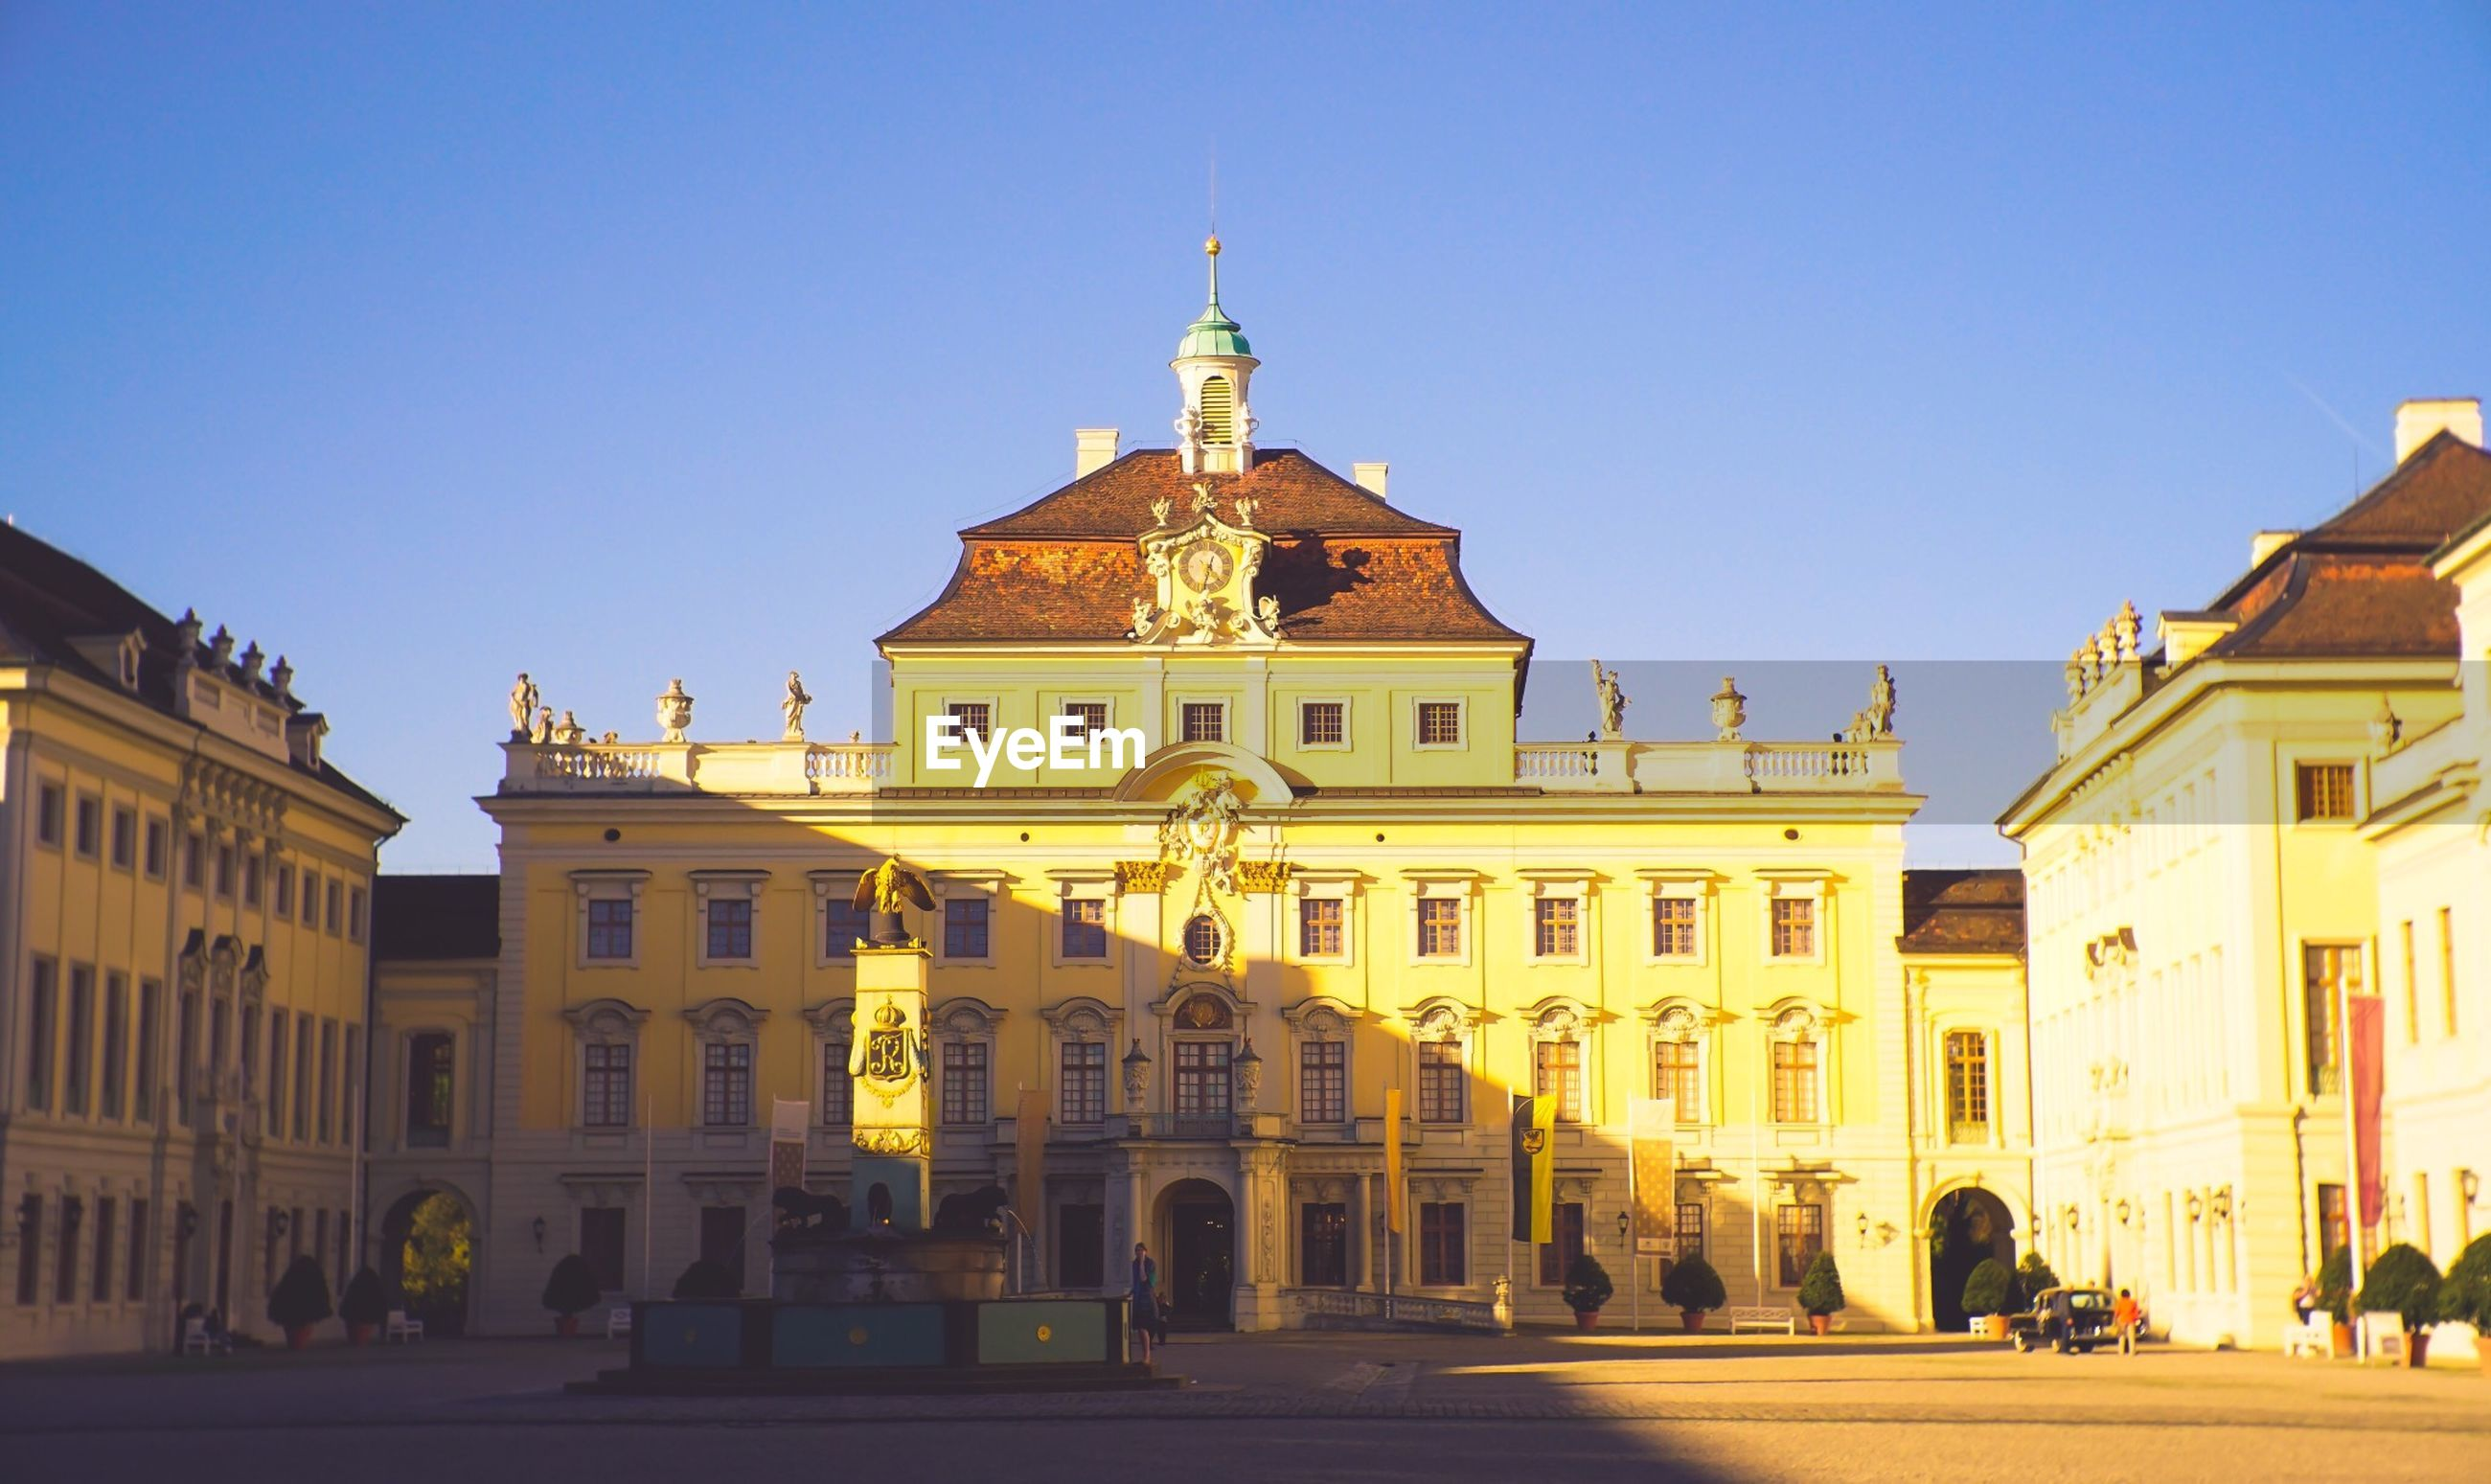 Ludwigsburg palace against clear sky on sunny day